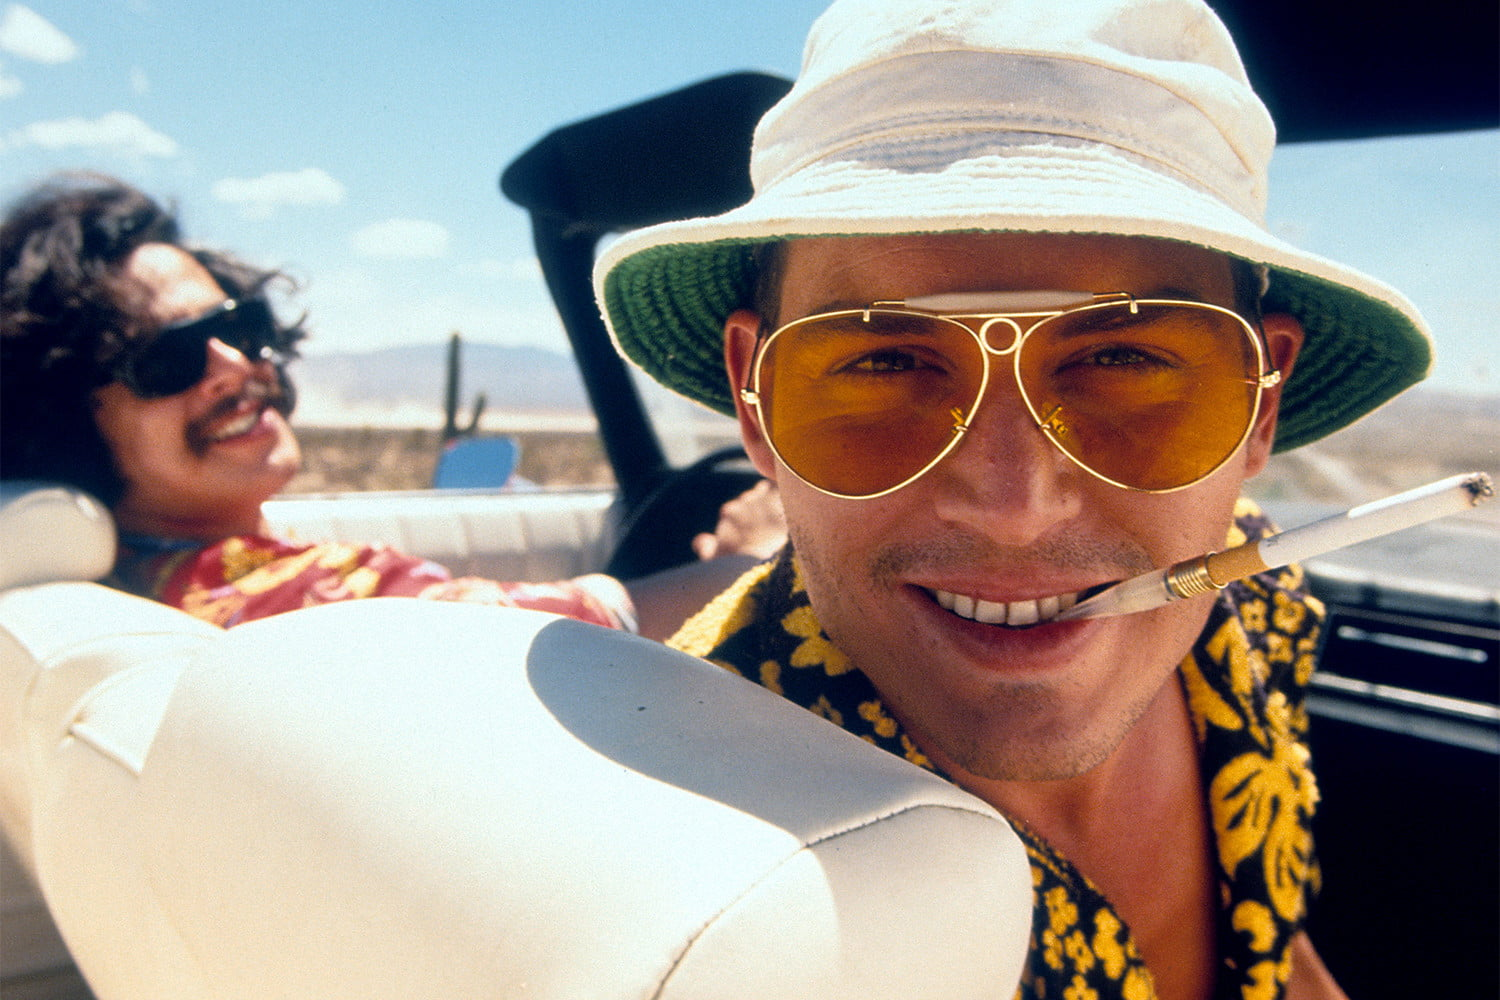 This Map Will Take You on the Same Road Trip in 'Fear and Loathing in Las Vegas'